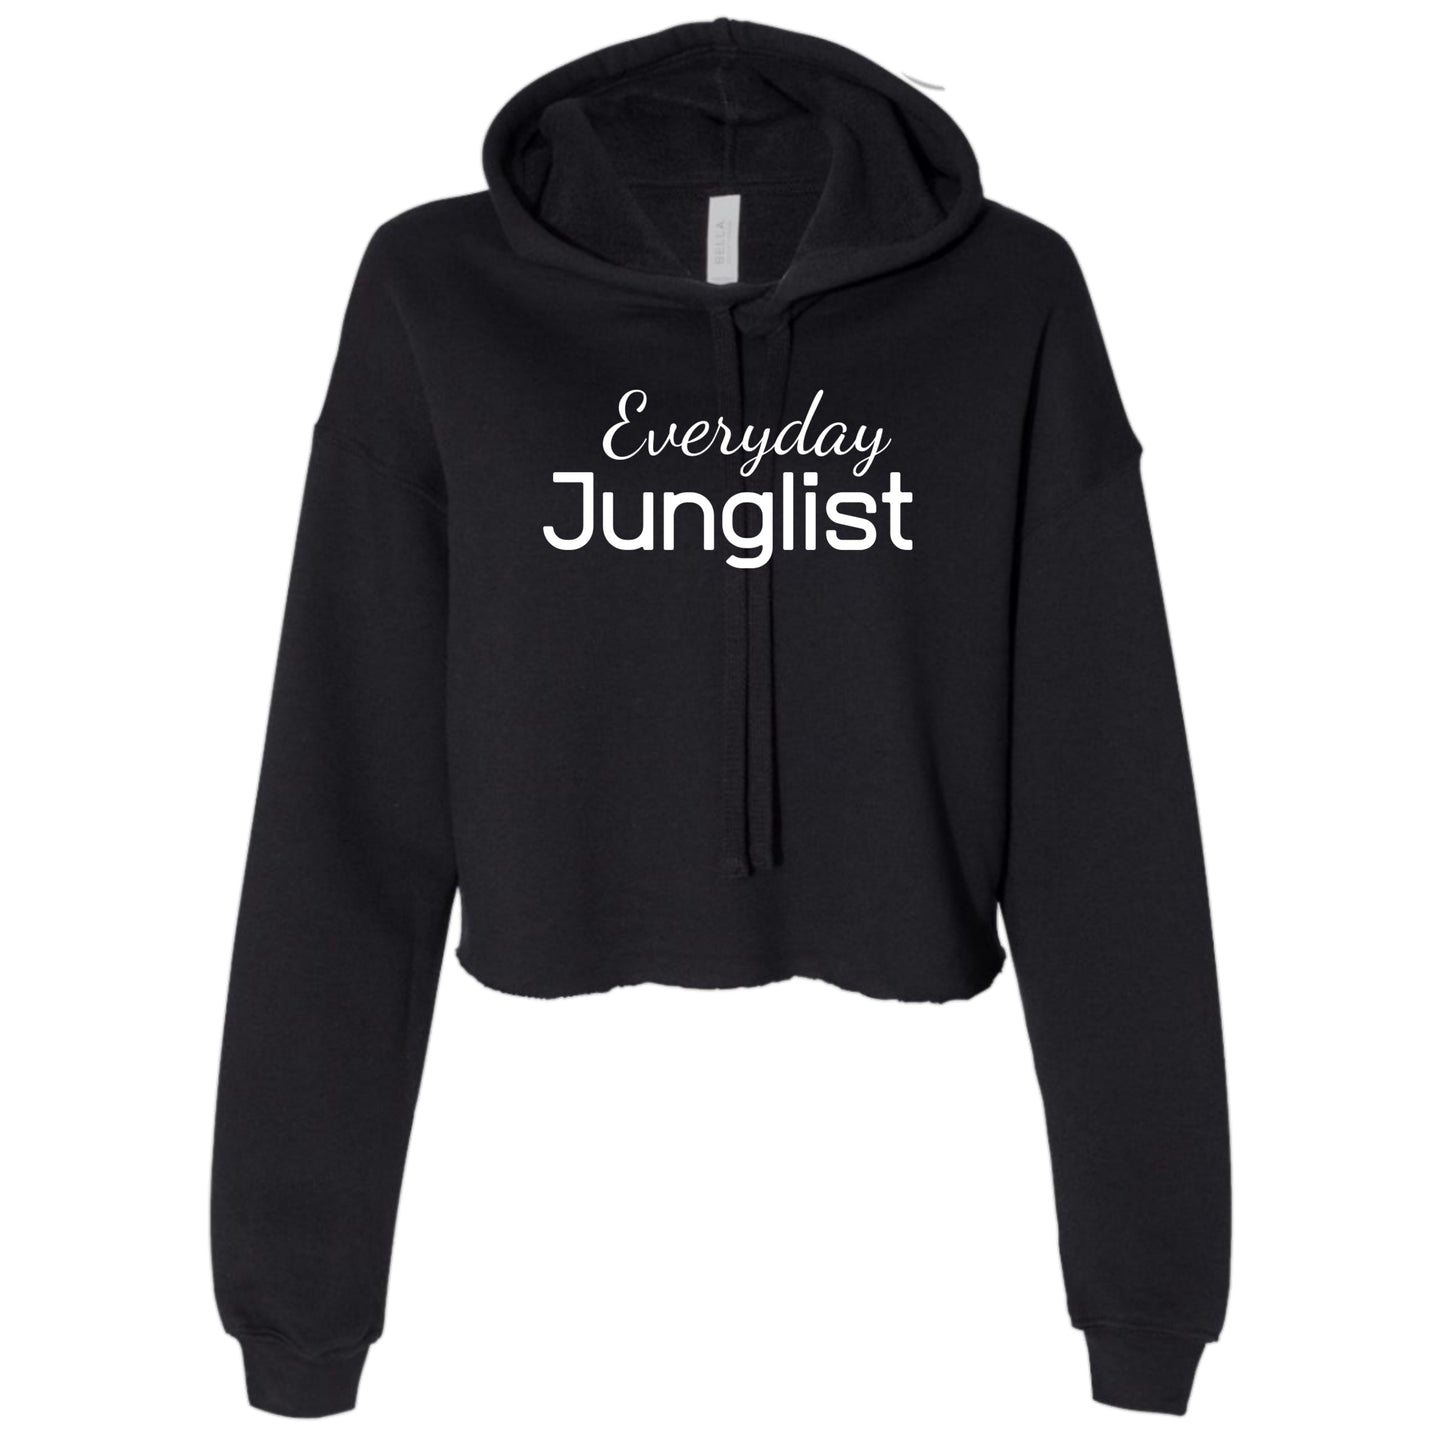 Ladies Everyday Junglist Cropped Hooded Sweater